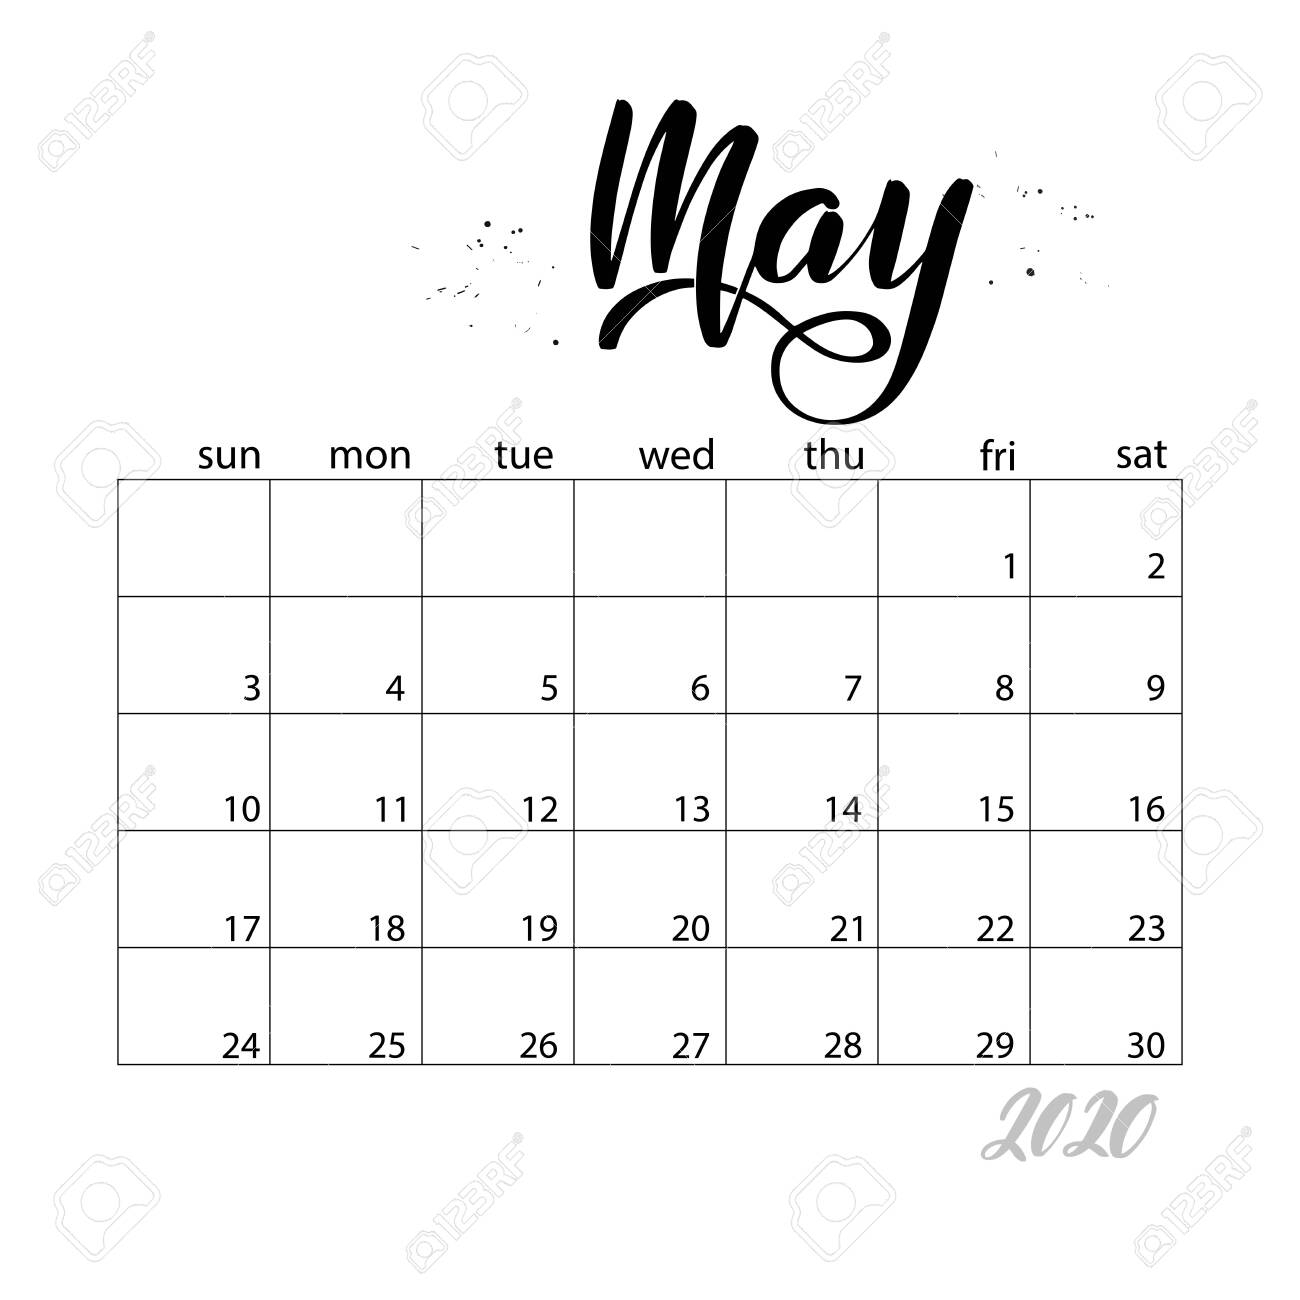 May. Monthly Calendar For 2020 Year. Handwritten Modern Calligraphy..